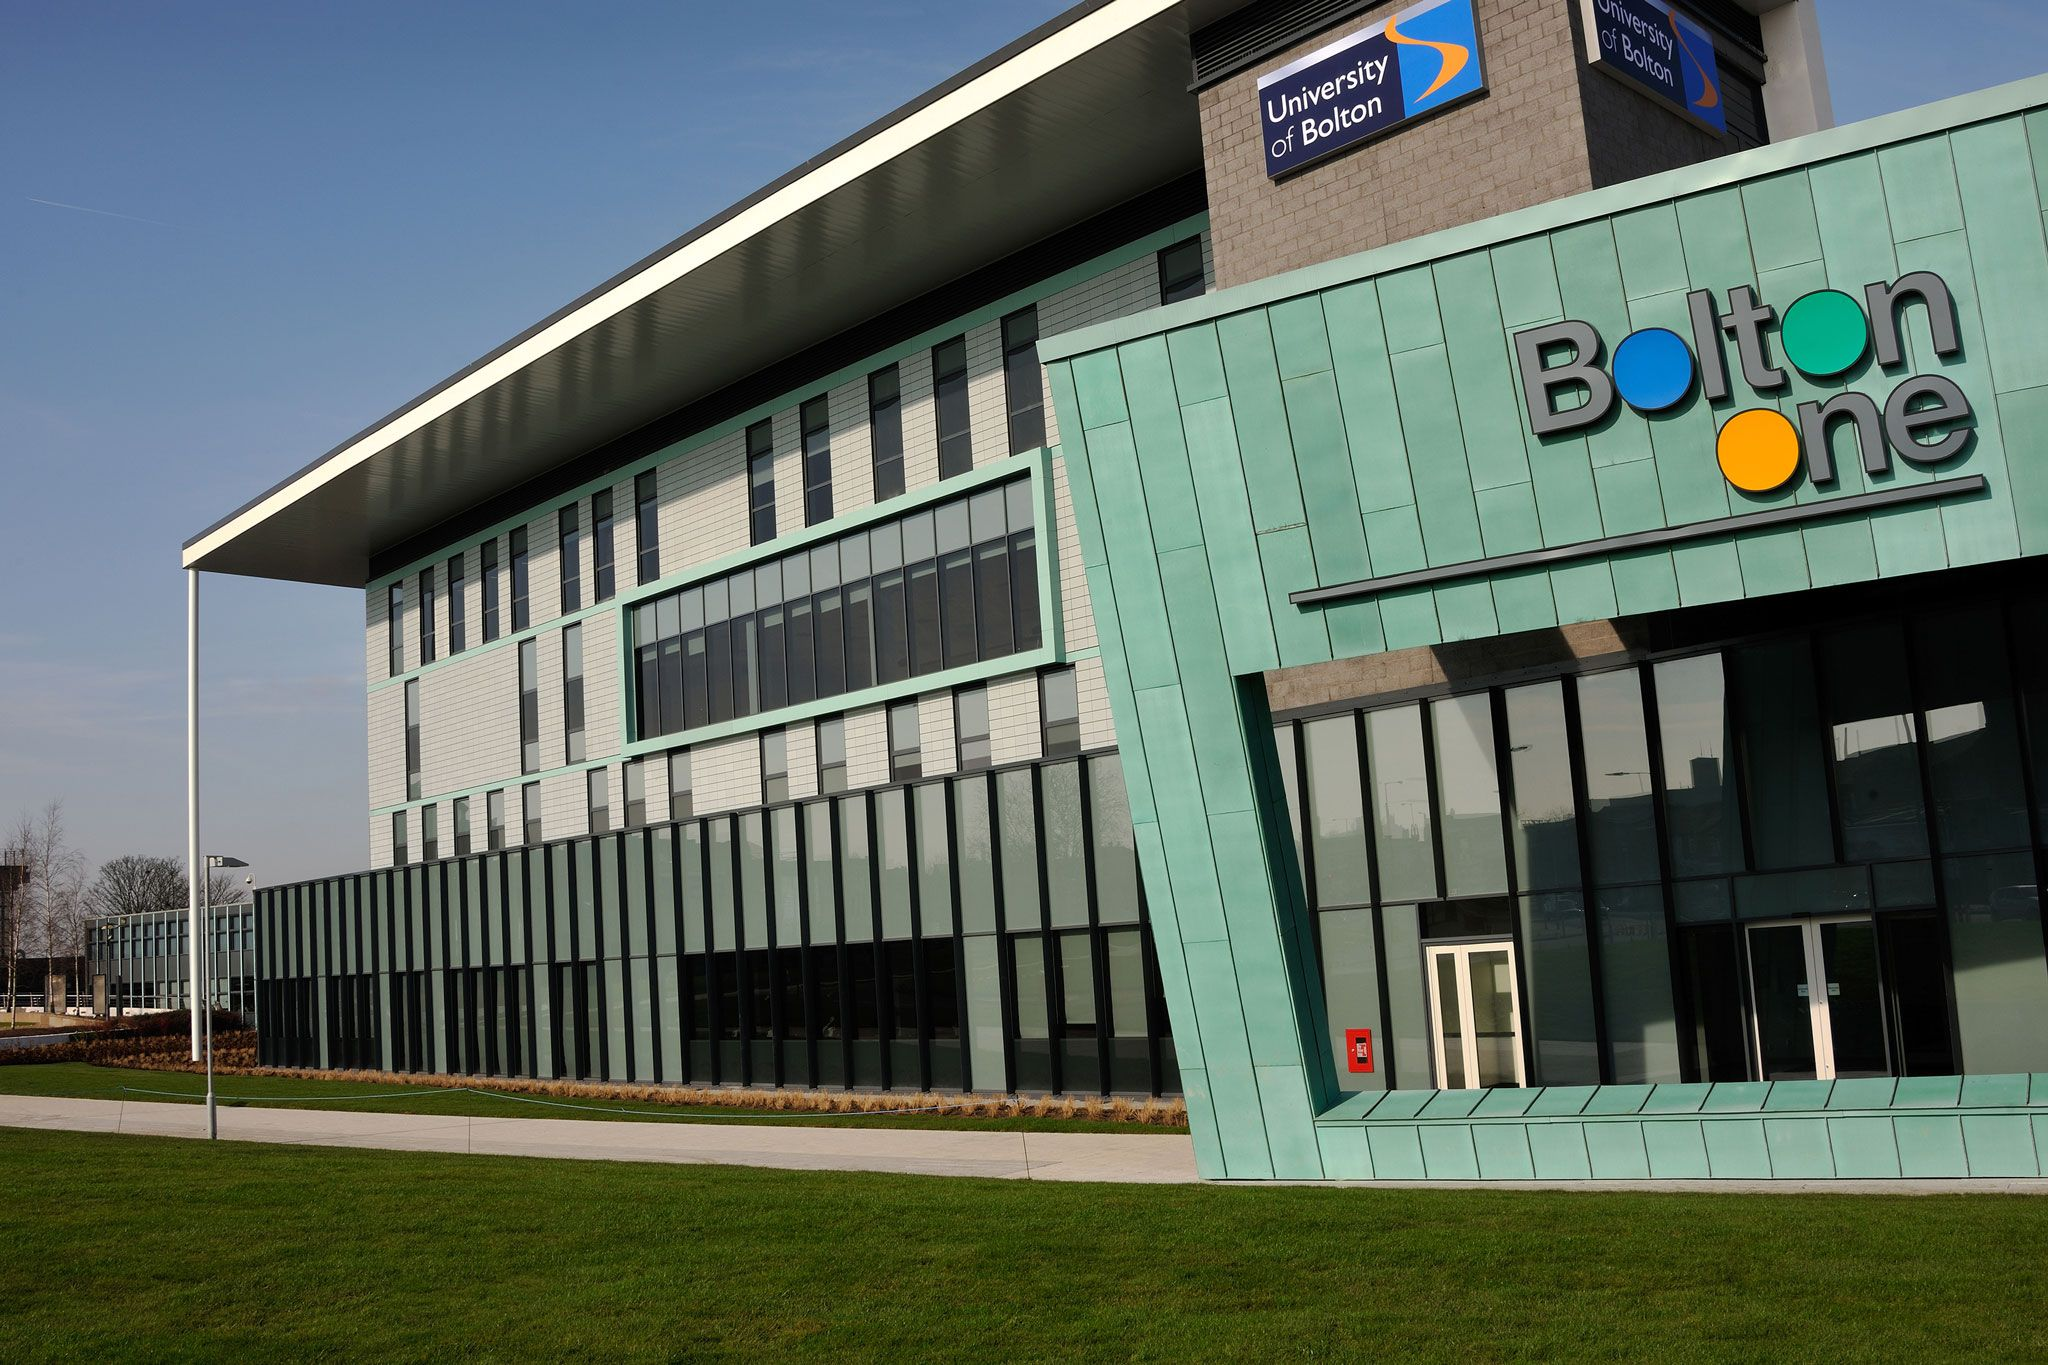 An-external-view-of-the-Bolton-One-Sports-Facilities-at-the-University-of-Bolton.jpg